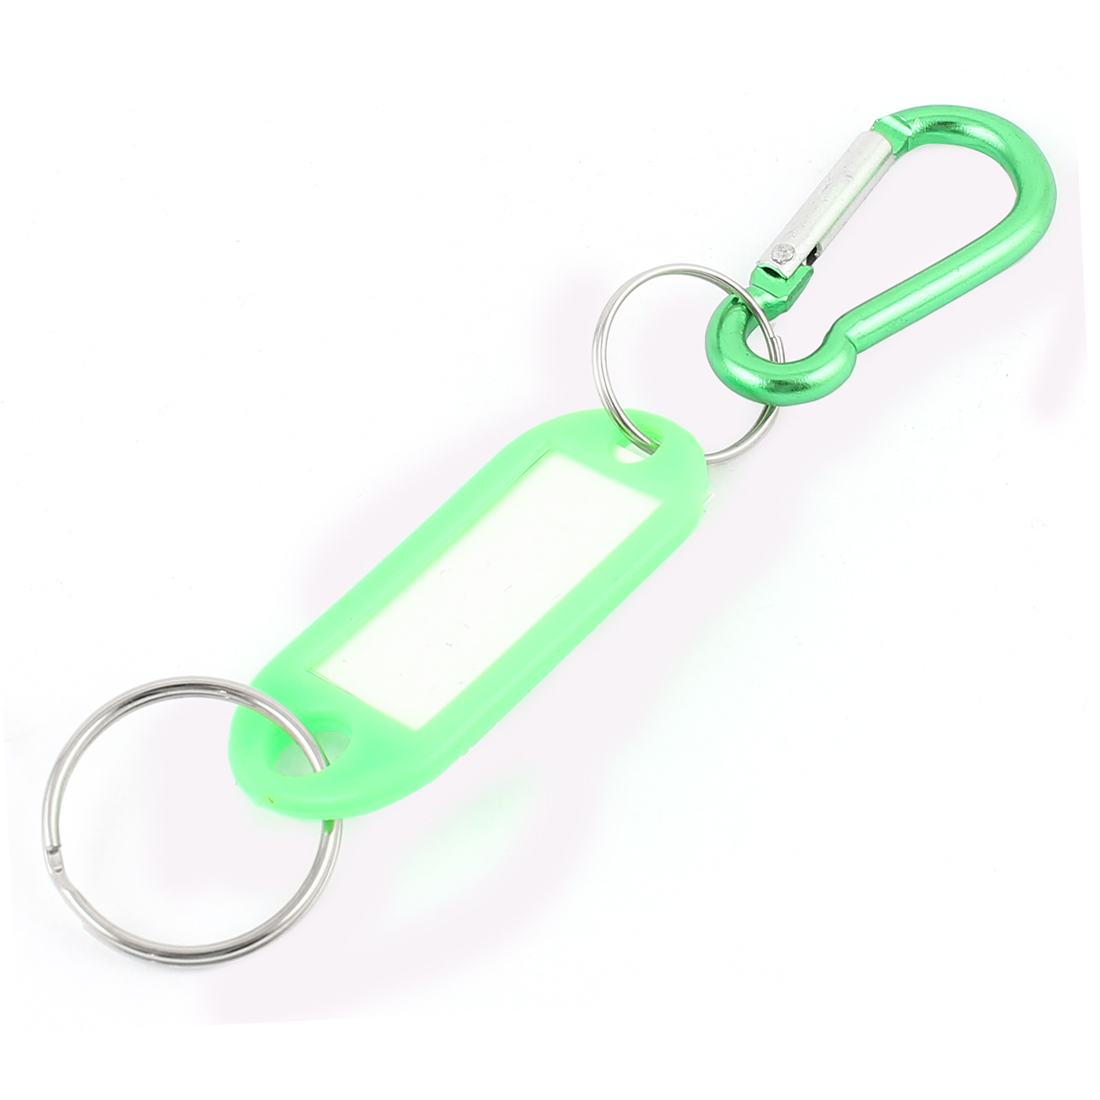 Name ID Tags Label Luggage Suitcase Bag Key Ring Carabiner Hook Green